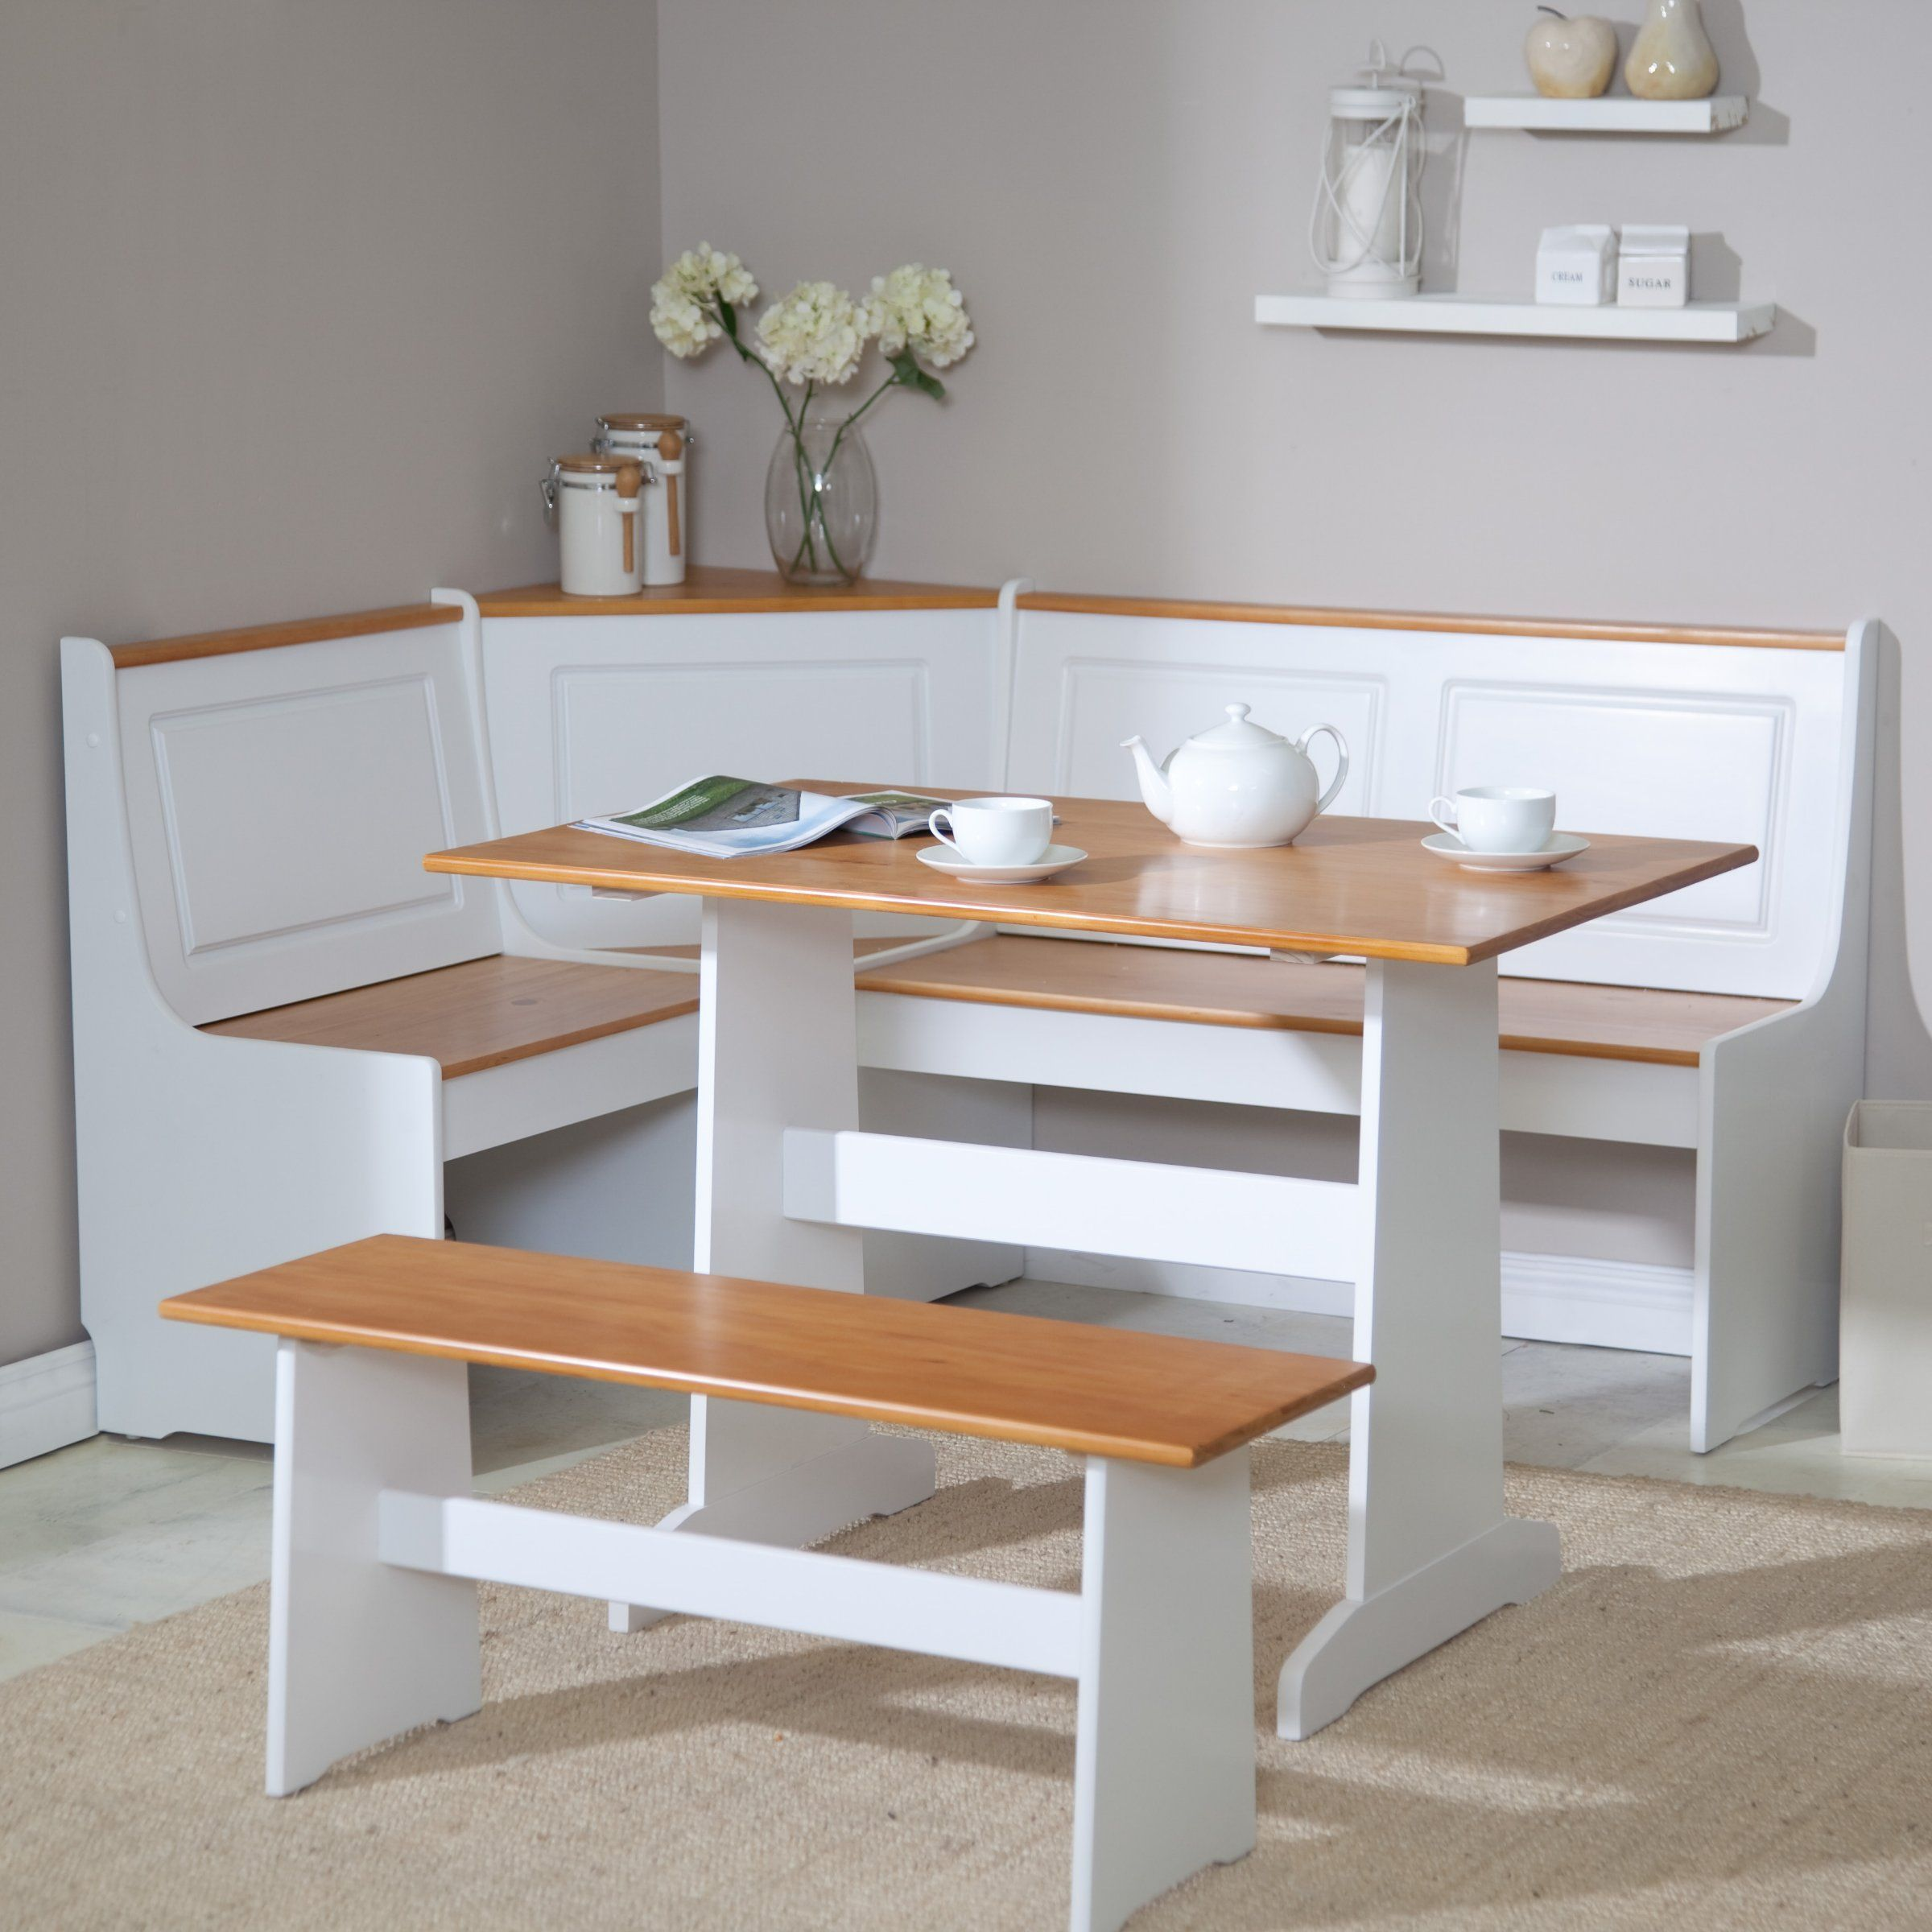 This Three Piece Breakfast Nook Can Help Brighten Up Your Space Or Fit In Nicely With A Dominan Nook Dining Set Breakfast Nook Furniture Corner Nook Dining Set